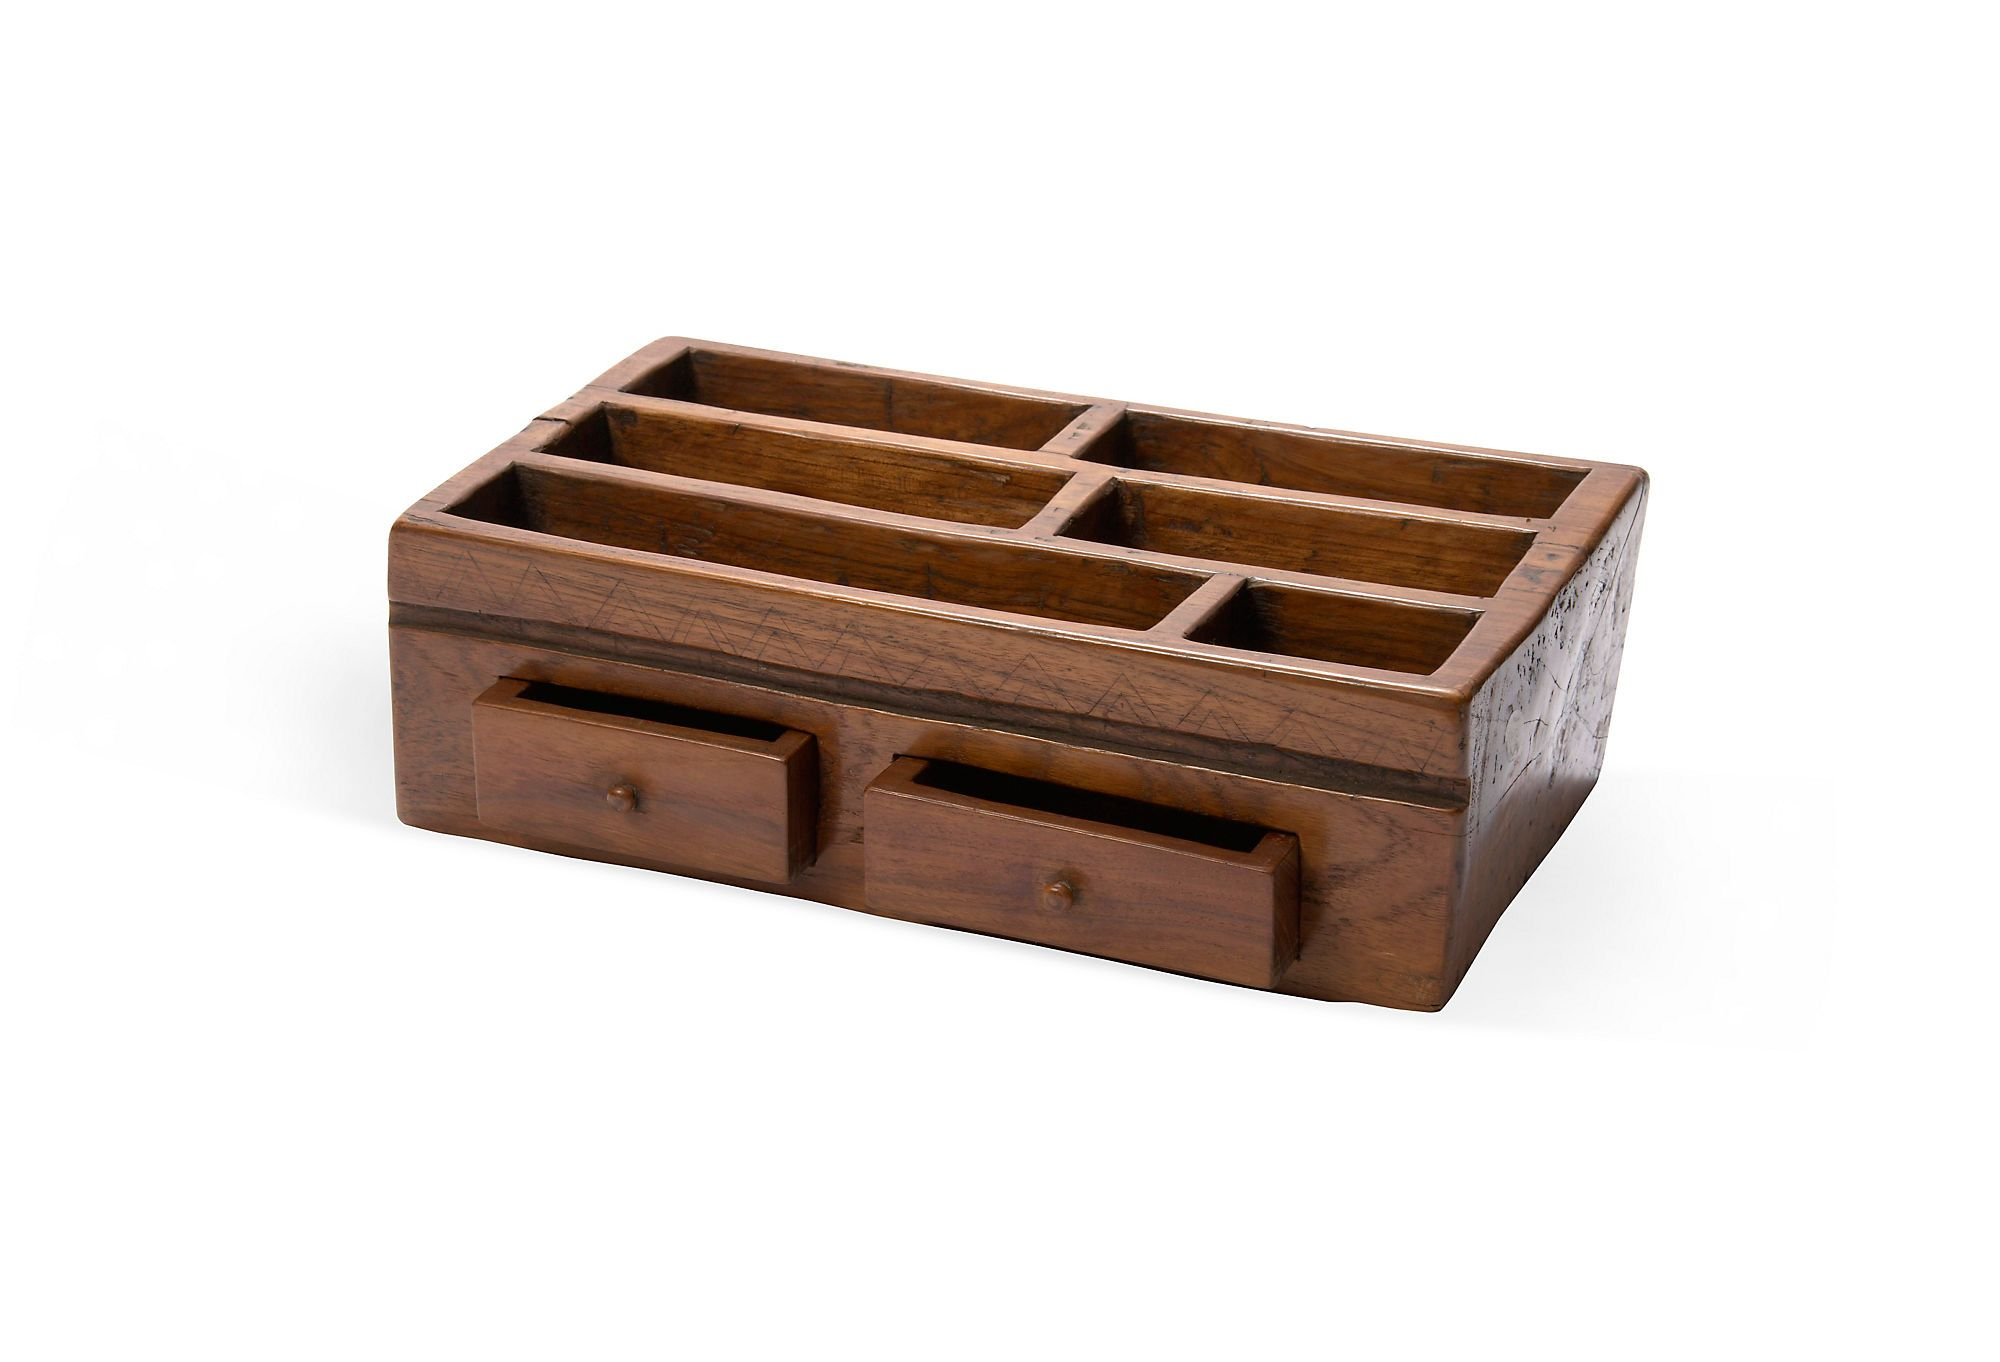 Teak Jewelry Box Home Love Pinterest Teak Woods and Organizing